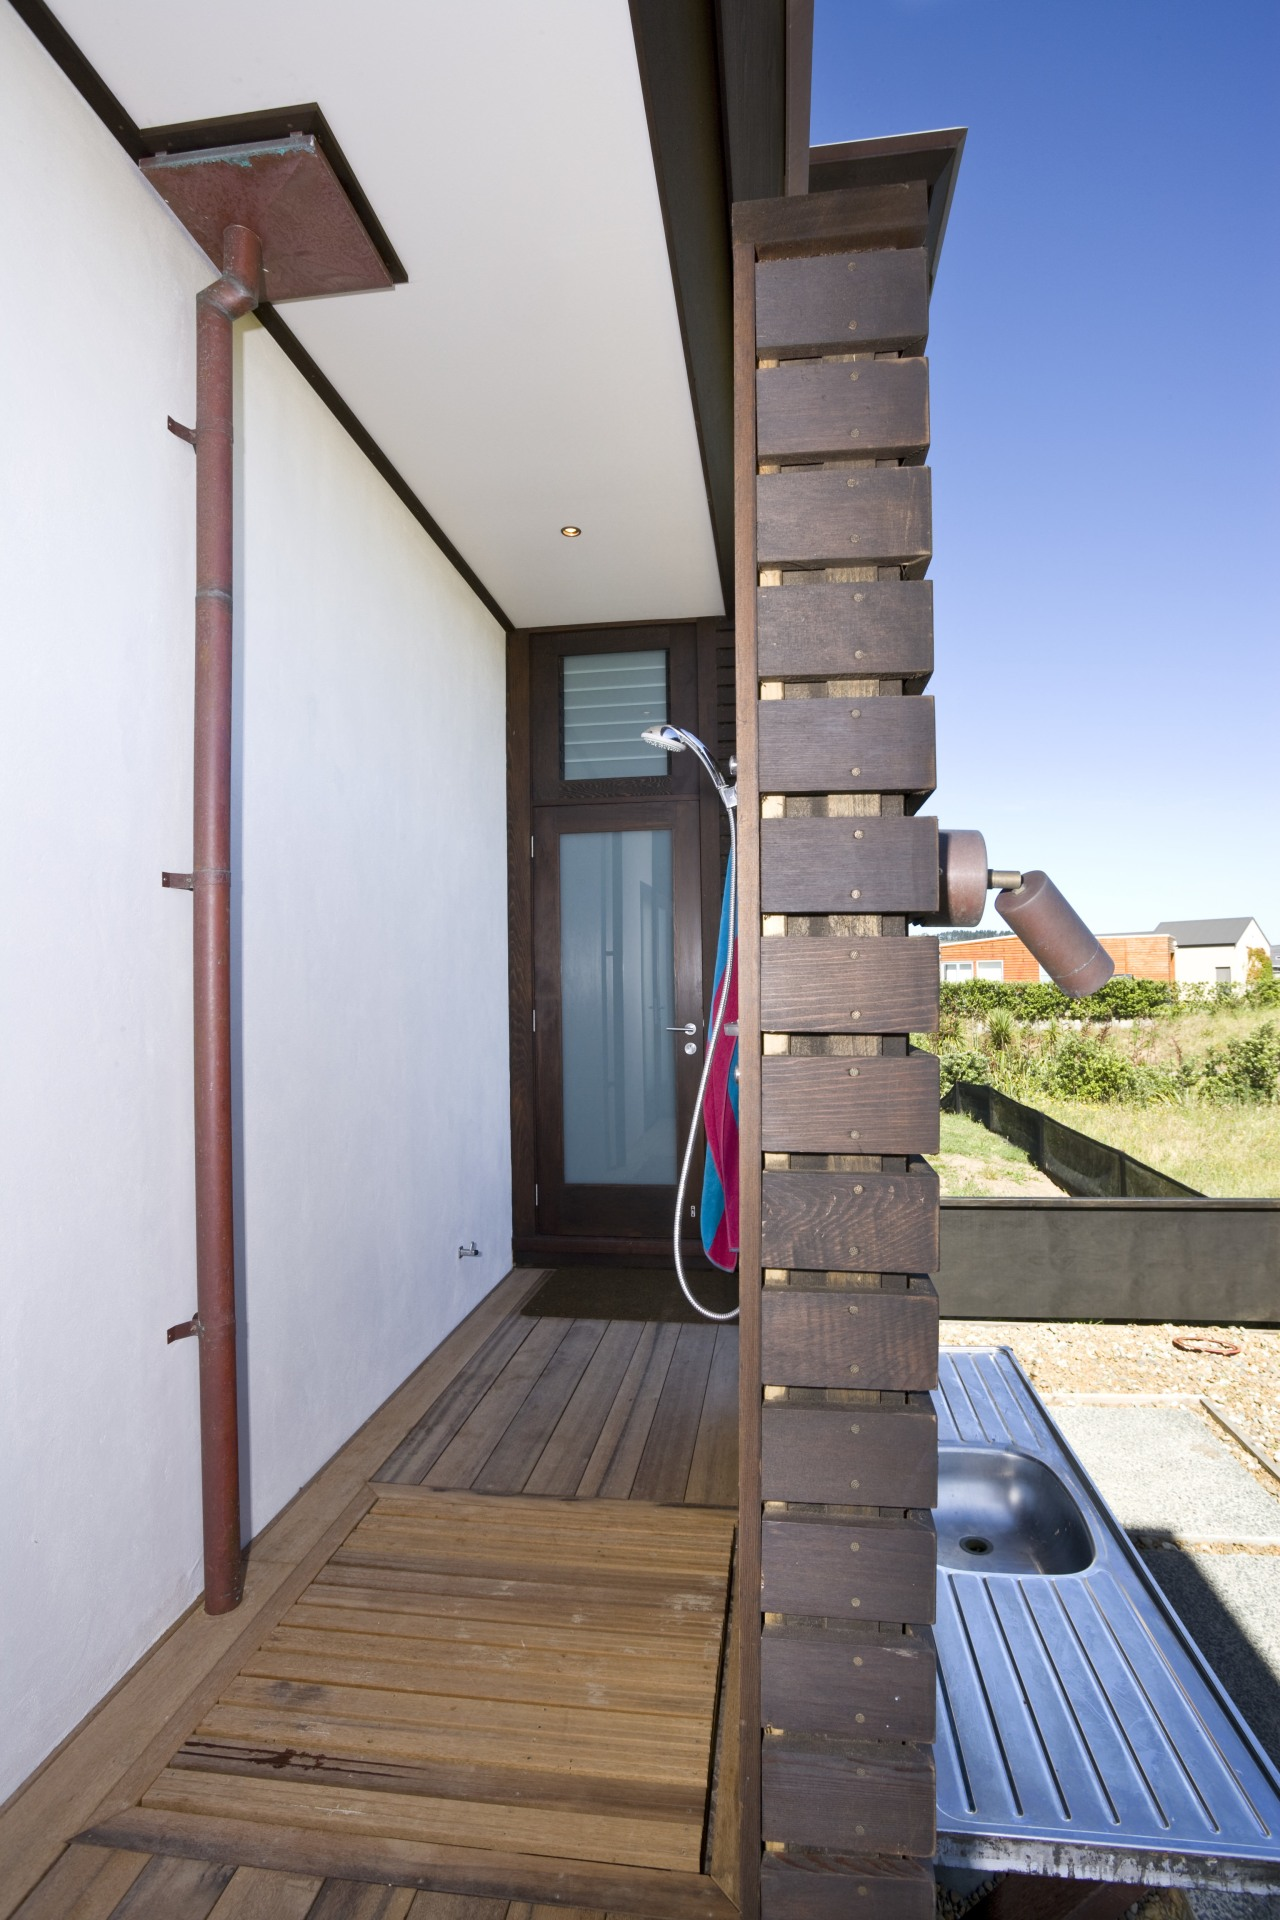 View of an outdoor shower, decking, shower fittings. architecture, daylighting, handrail, house, stairs, structure, wood, white